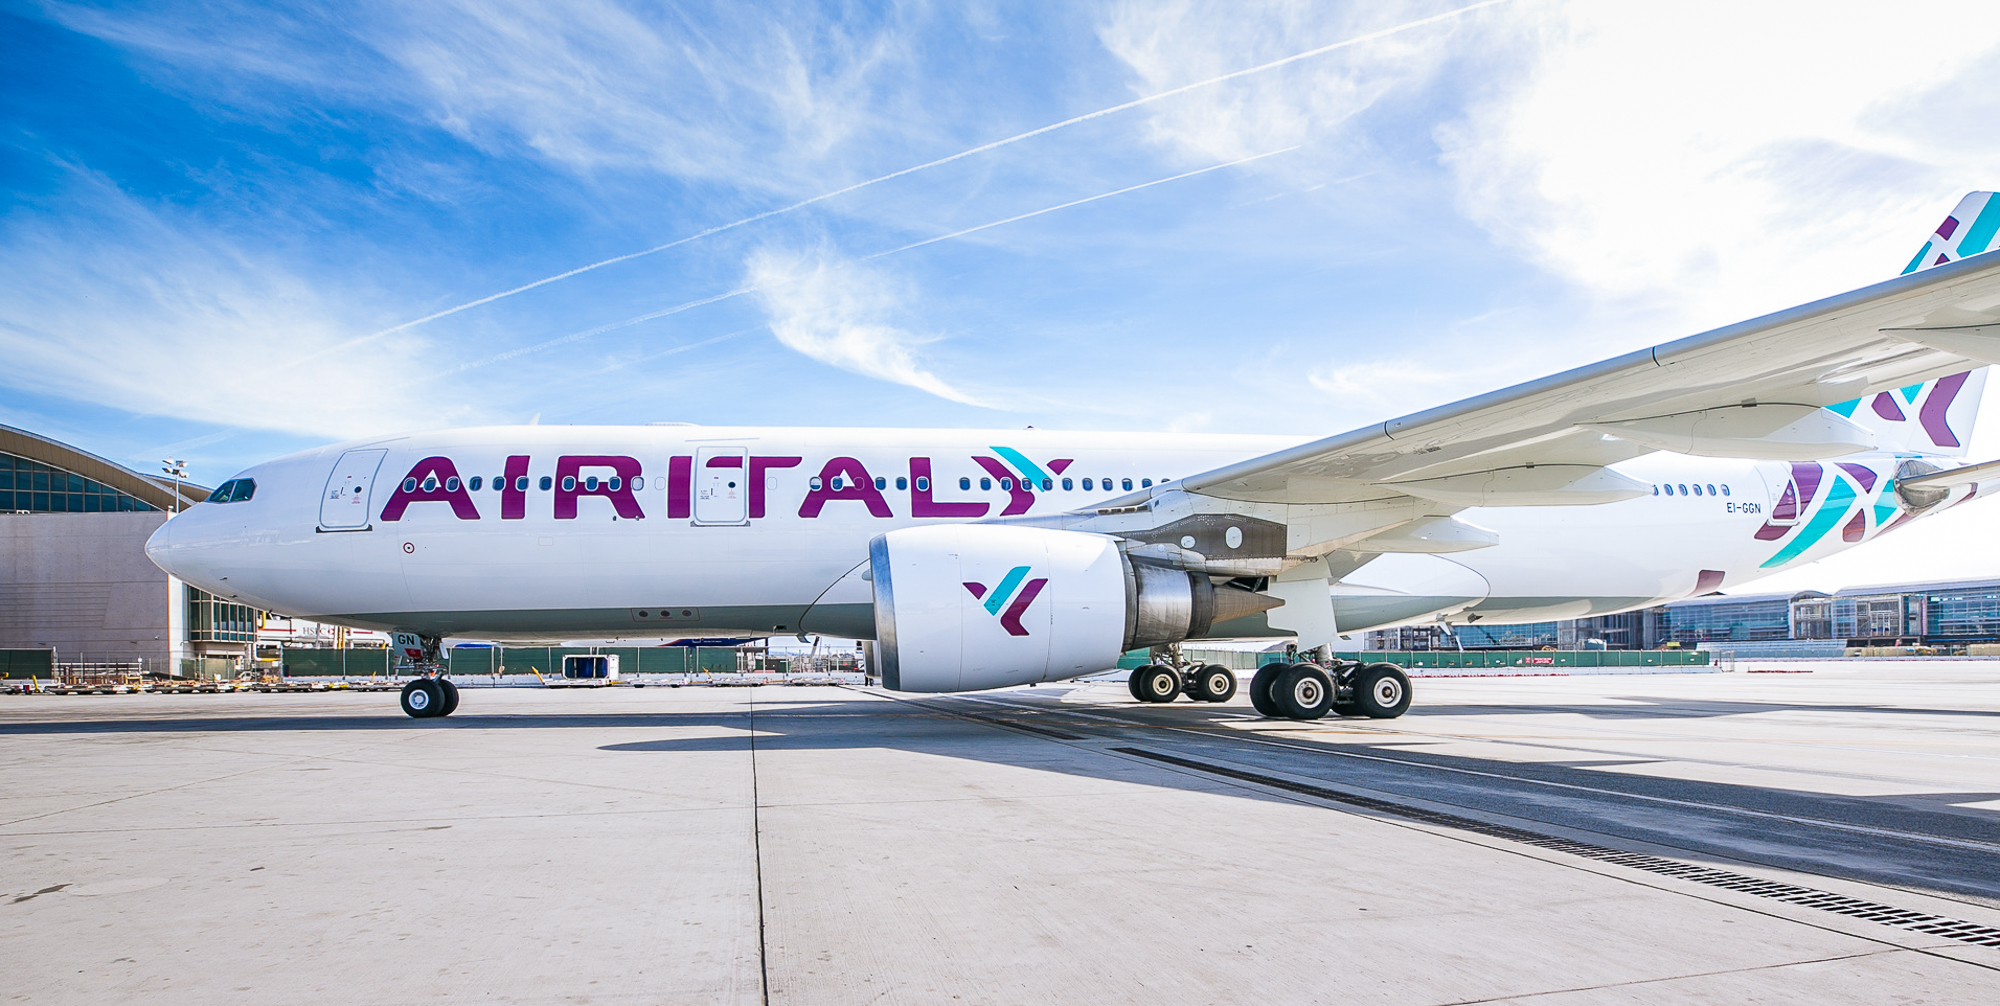 Confusion Over Air Italy's Schedules Raise Important Questions About the State of the Airline